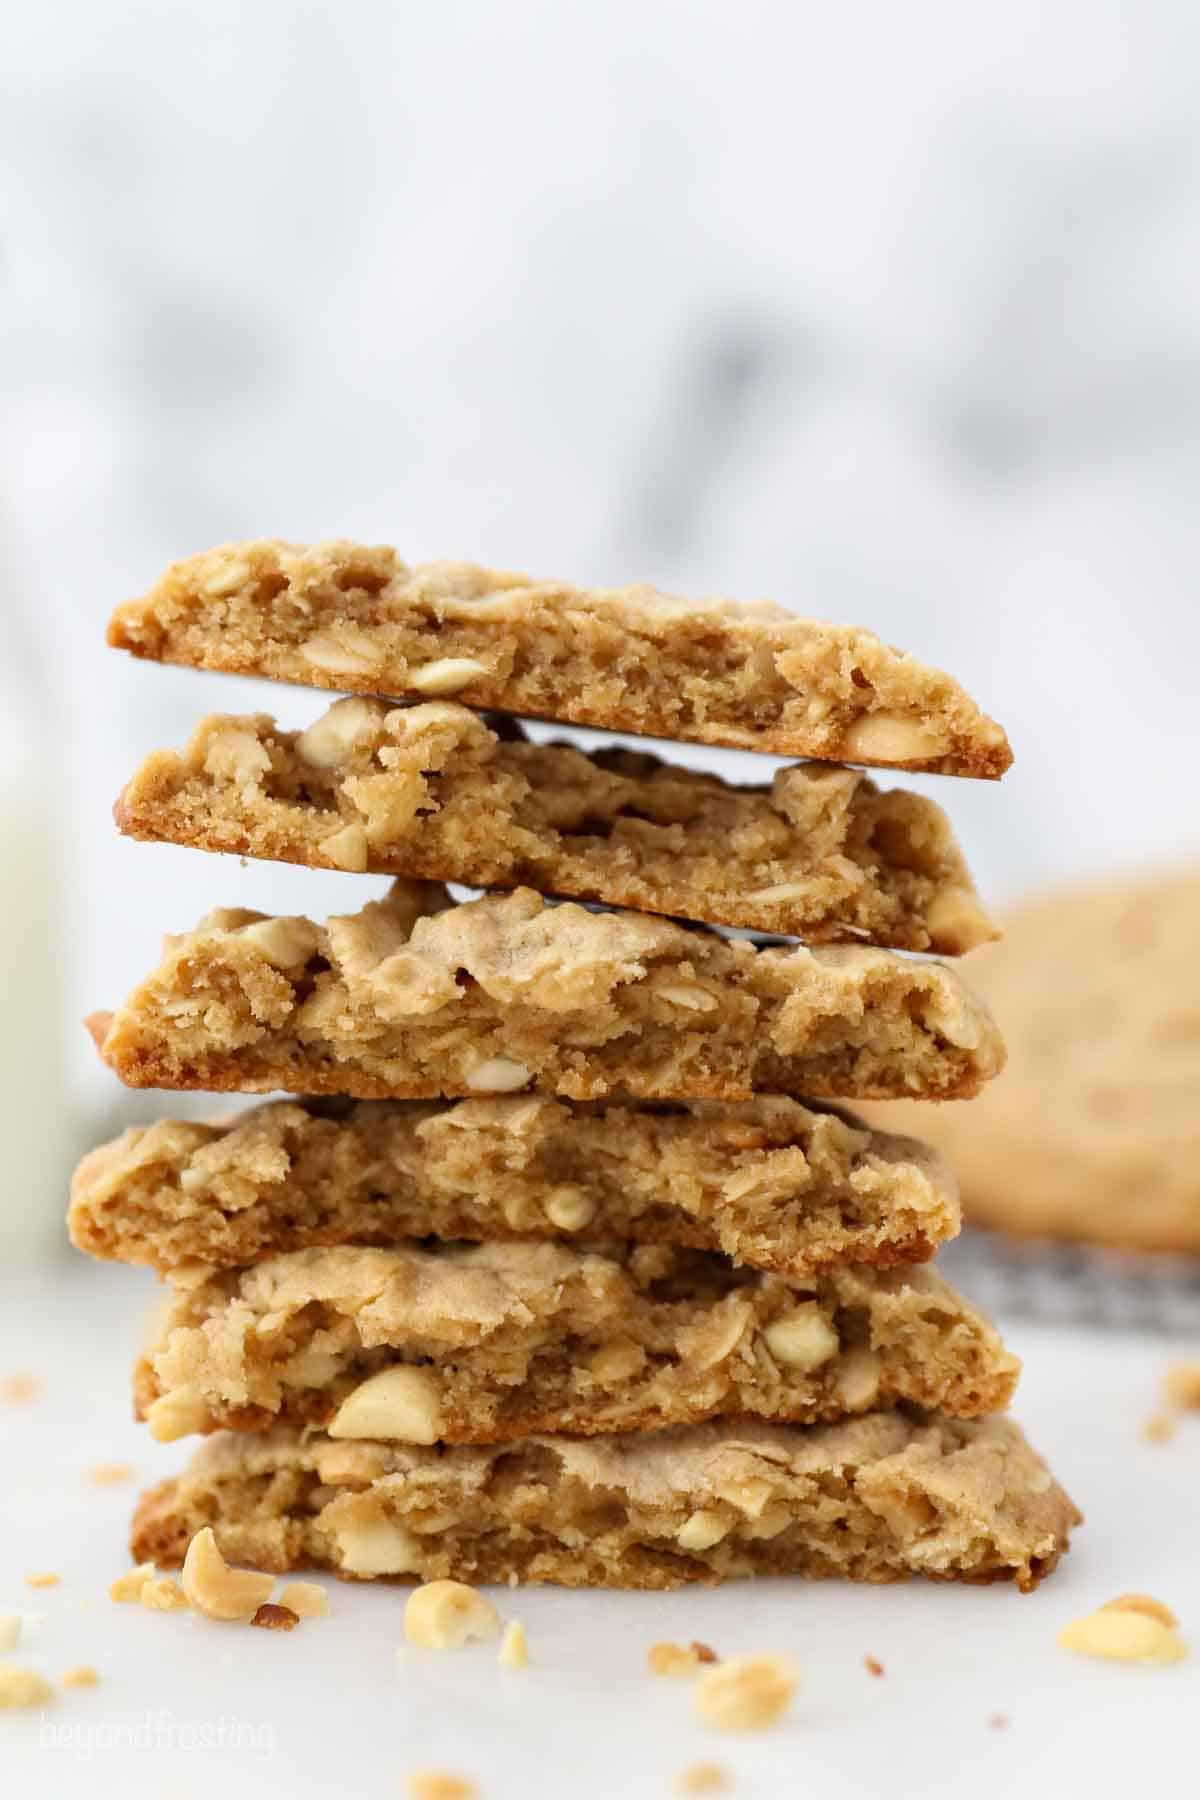 A stack of peanut butter oatmeal cookies that have been cut in half